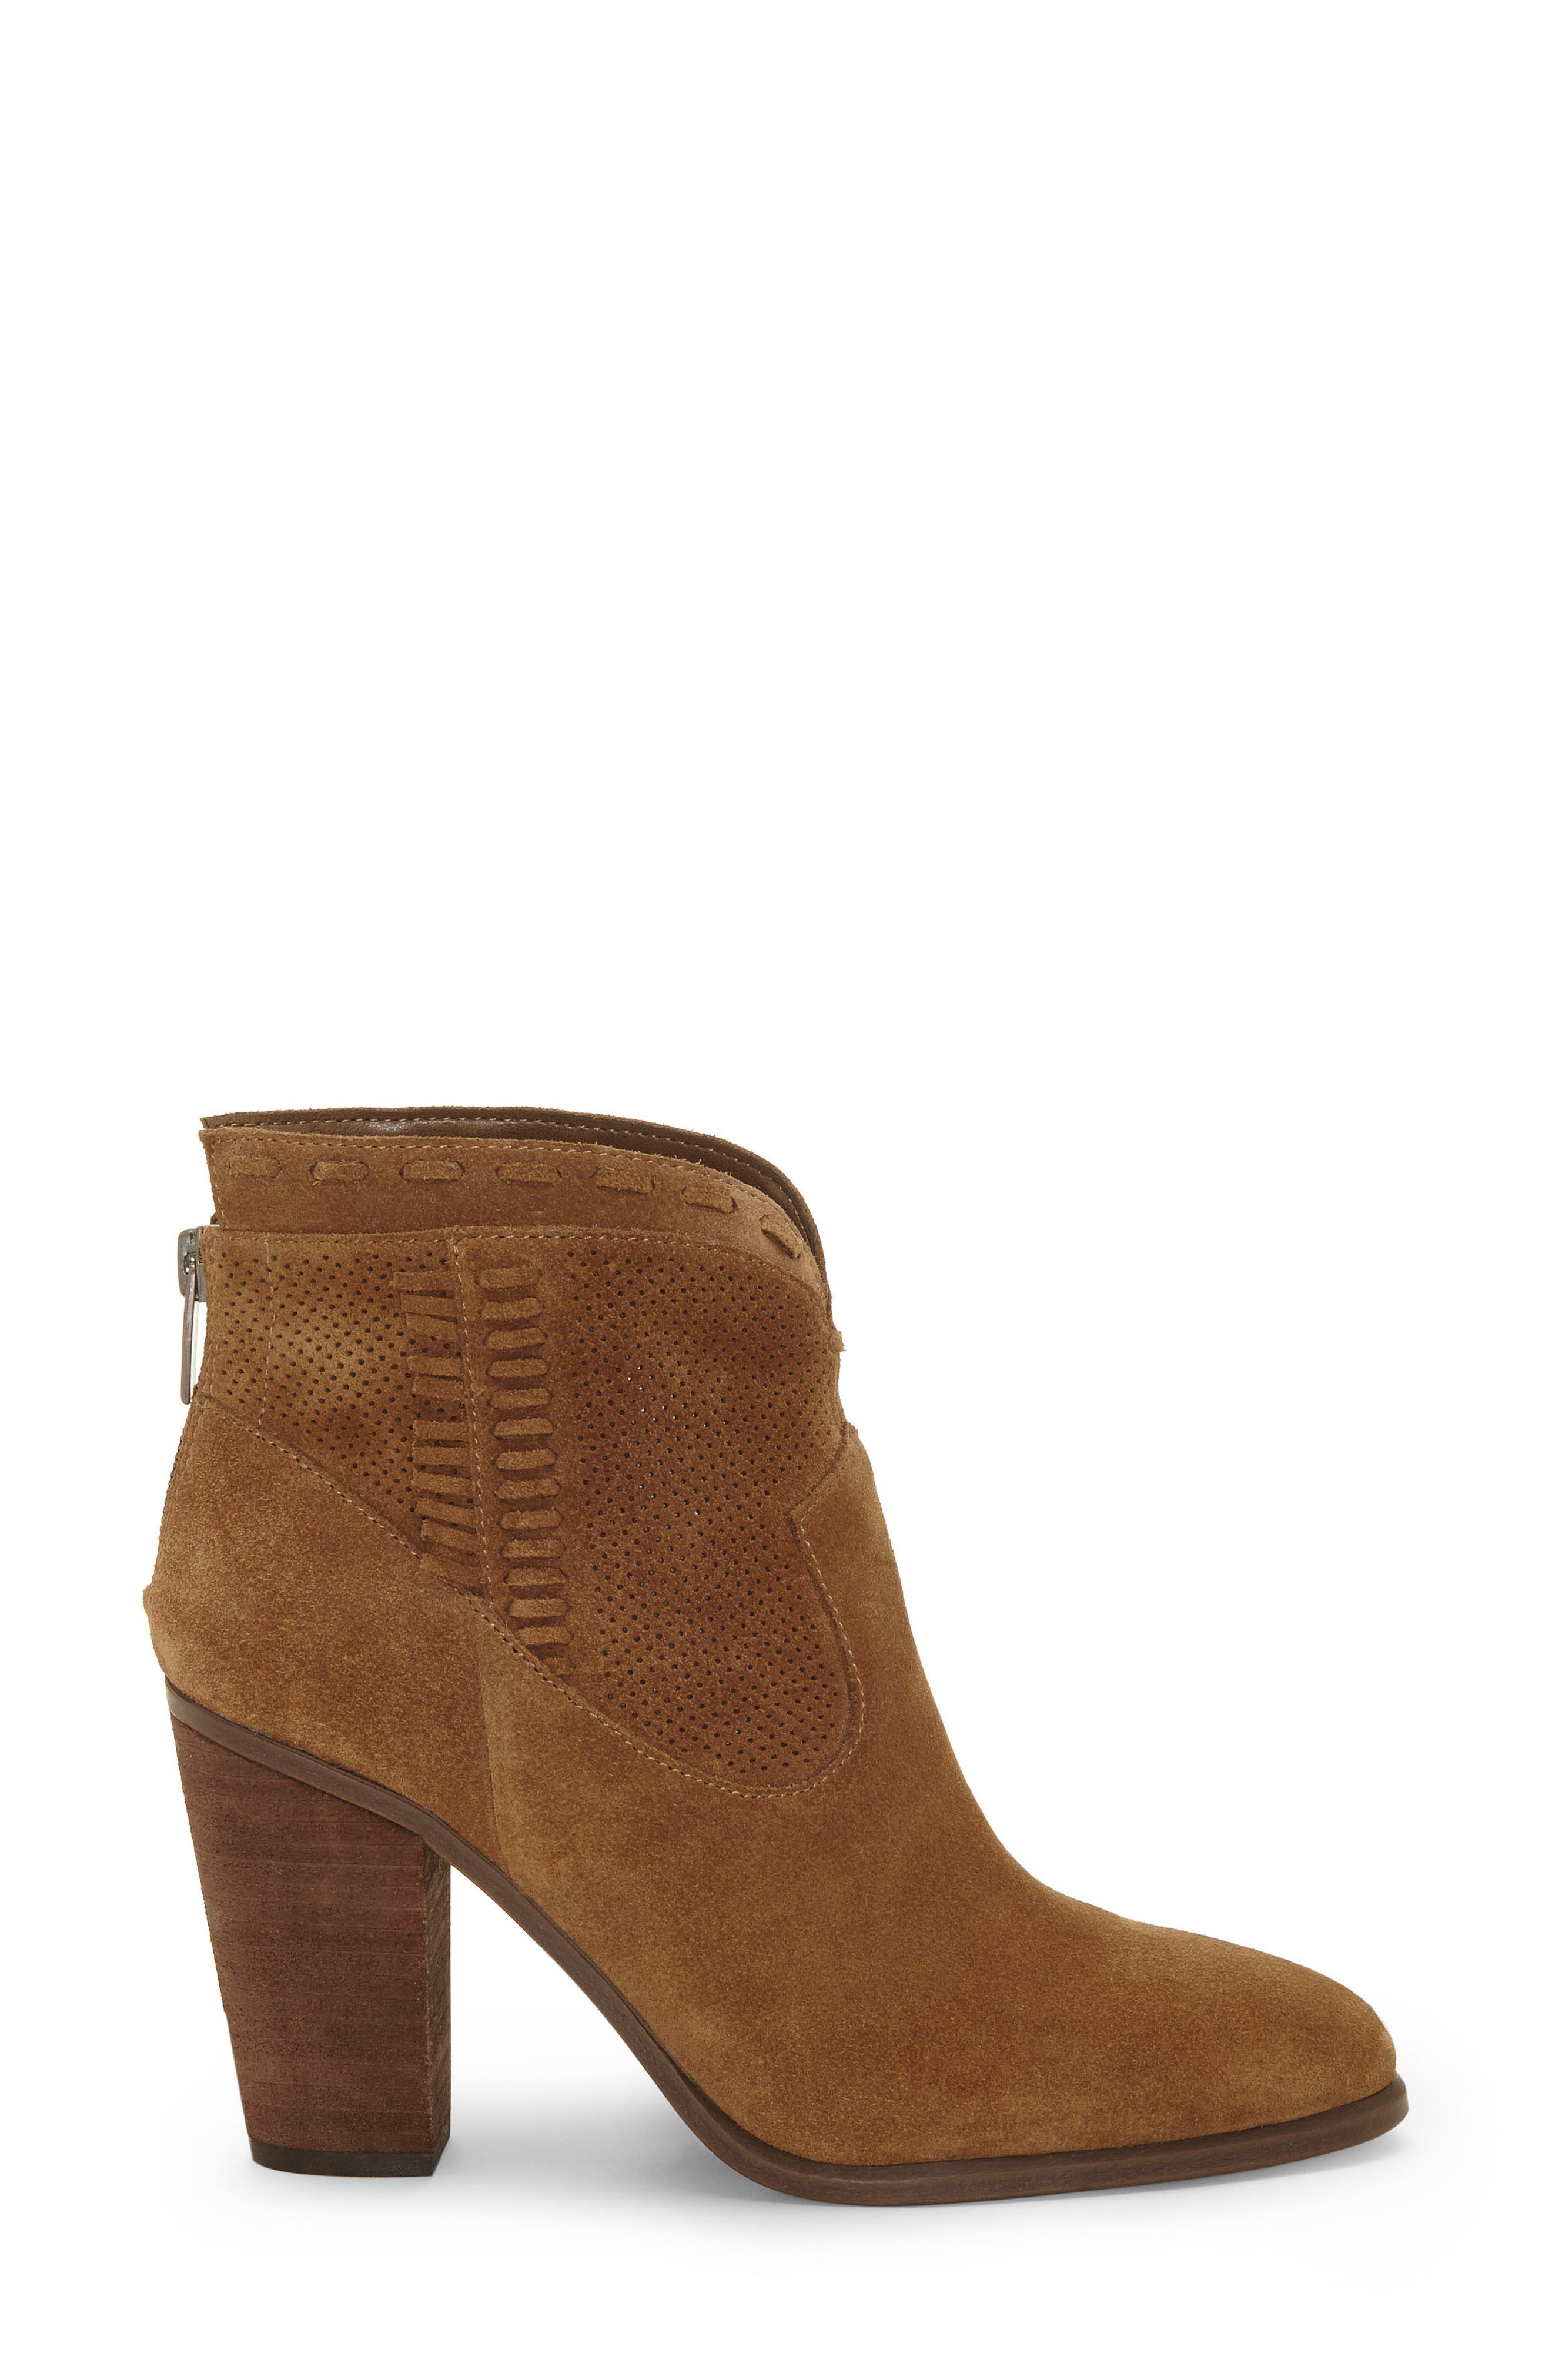 VINCE CAMUTO, Fretzia Perforated Boot, Alternate thumbnail 3, color, TREE HOUSE NUBUCK